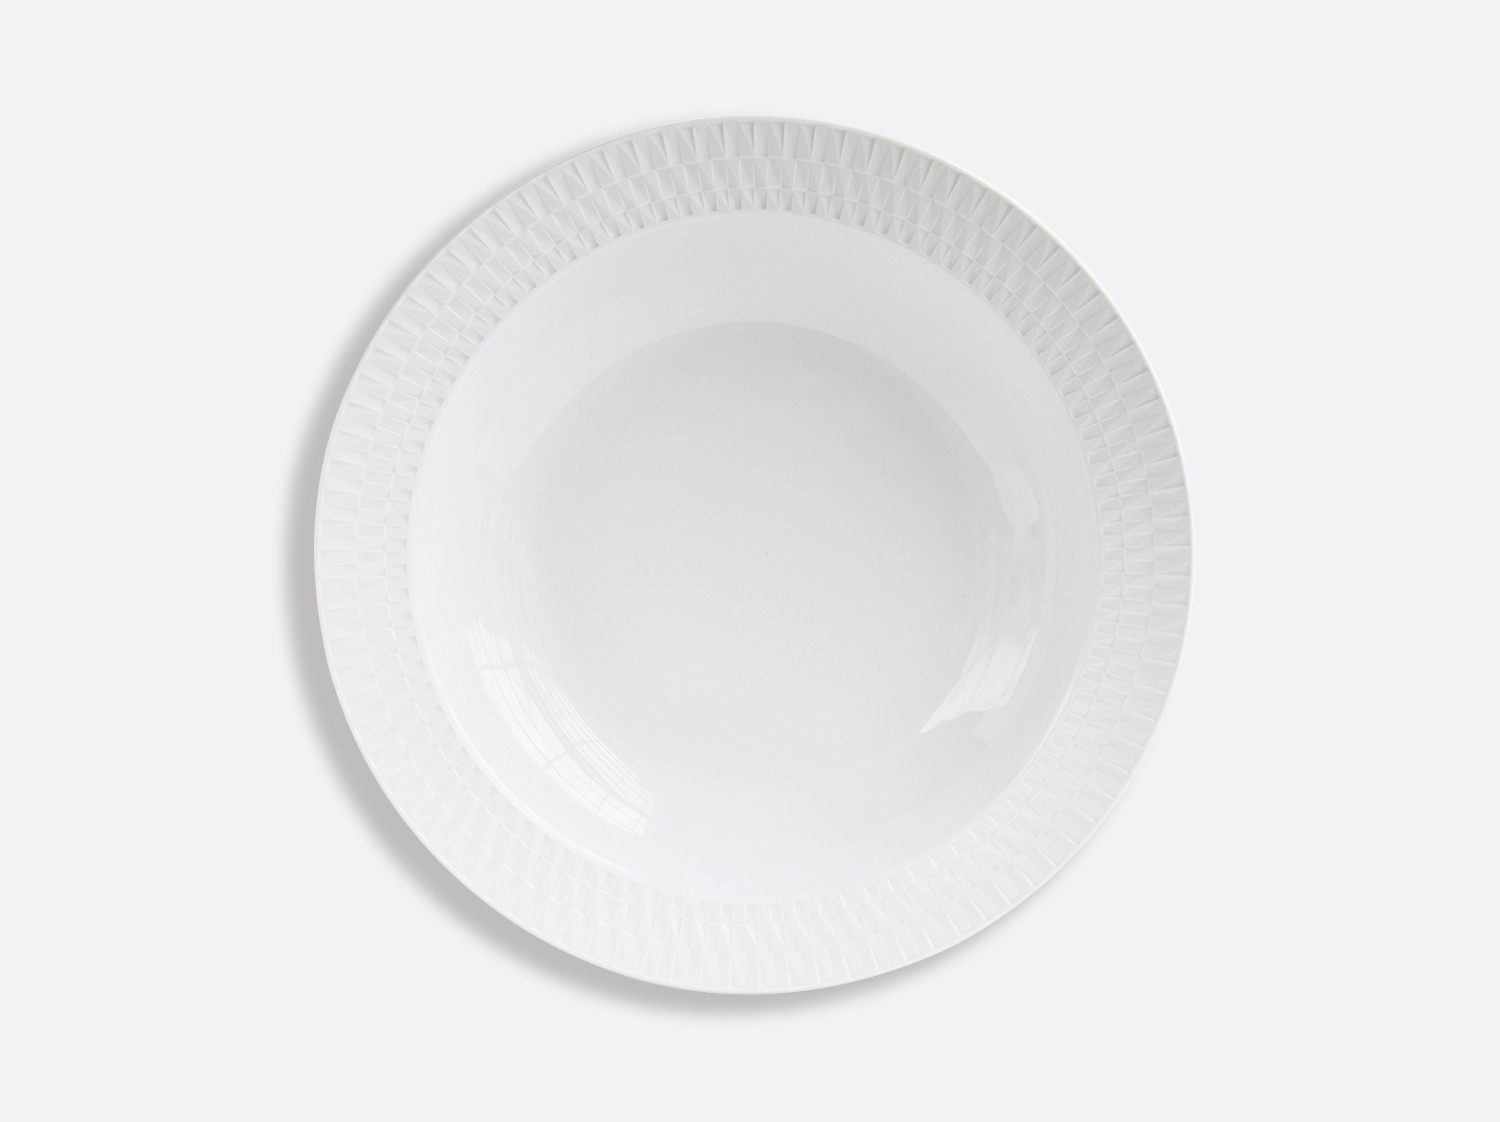 China ディープラウンドプラター 29cm of the collection Twist | Bernardaud